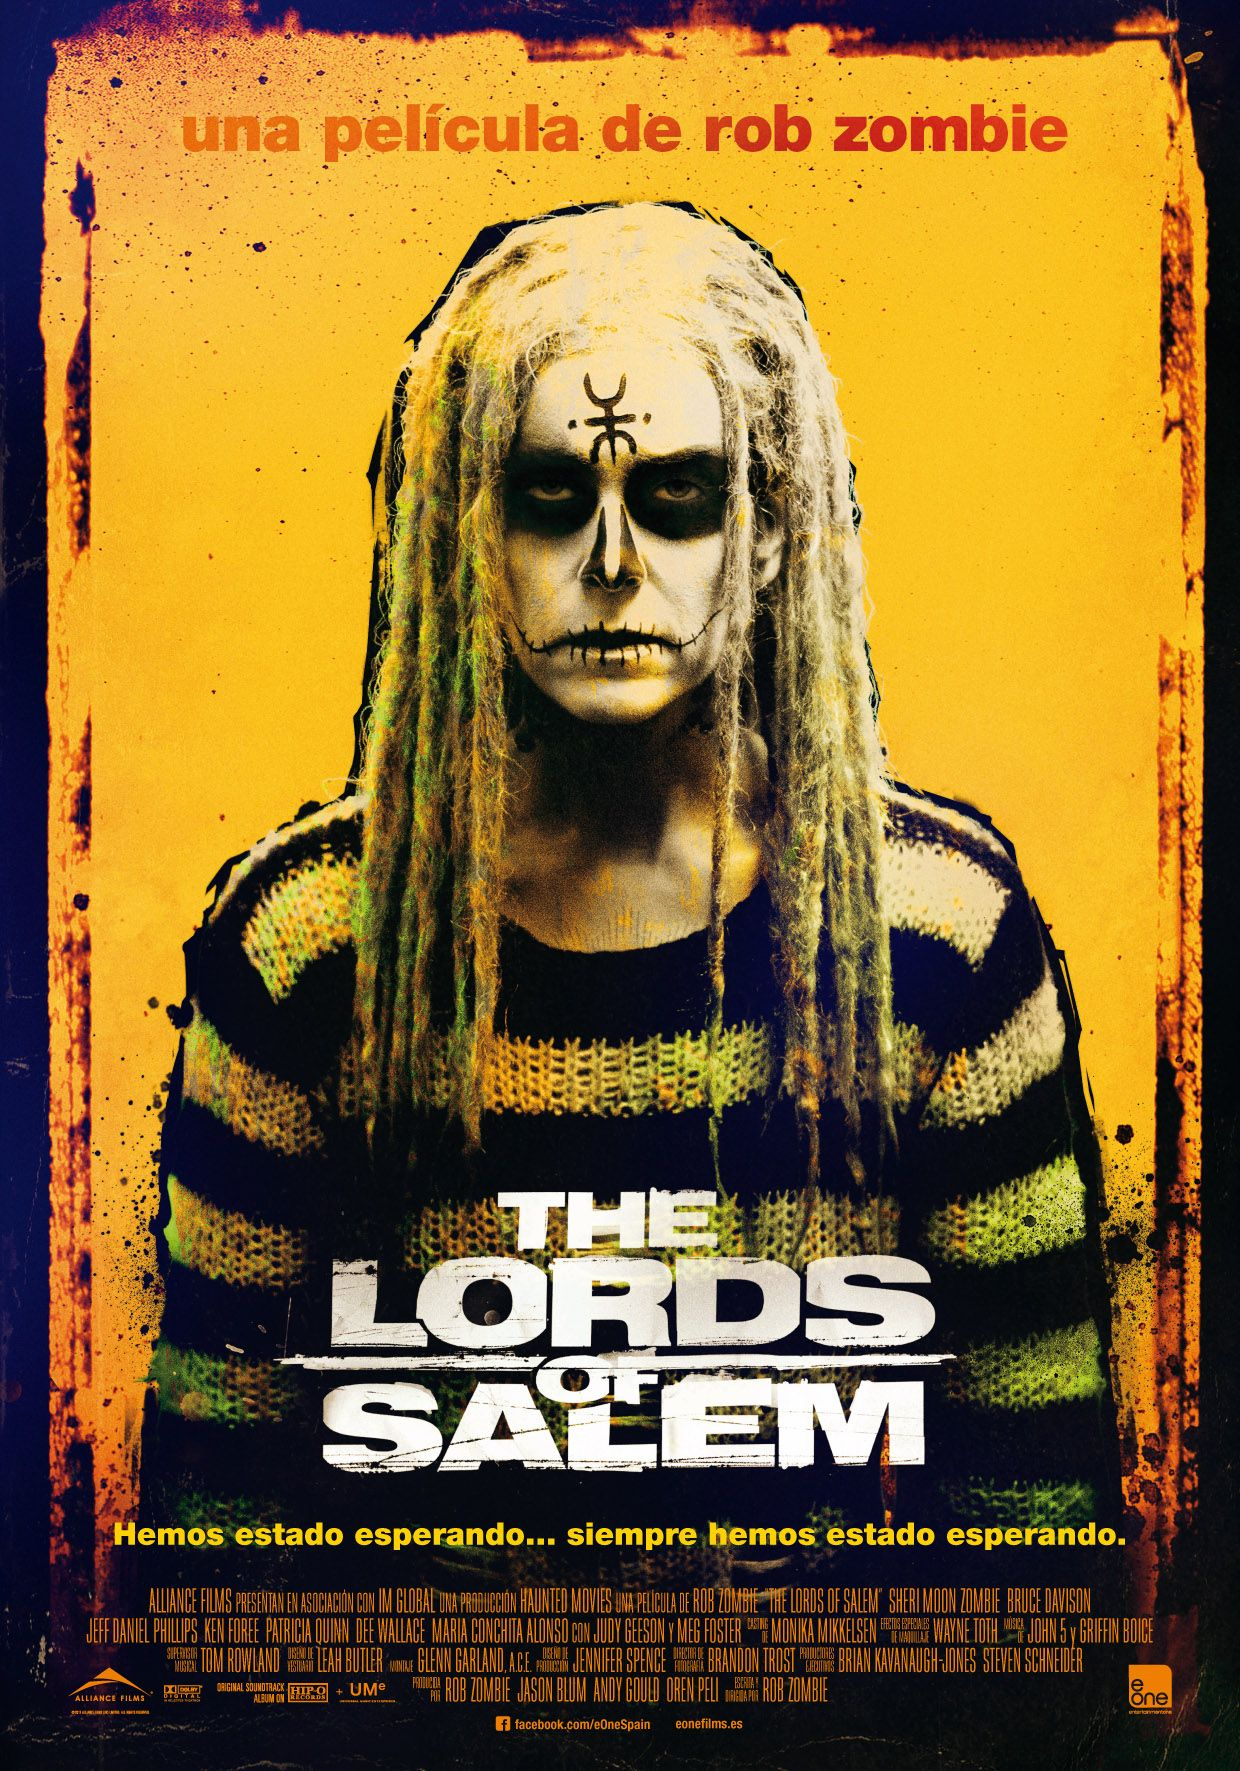 Cartelera de cine: Lords of Salem. Terror, brujas y DJs.